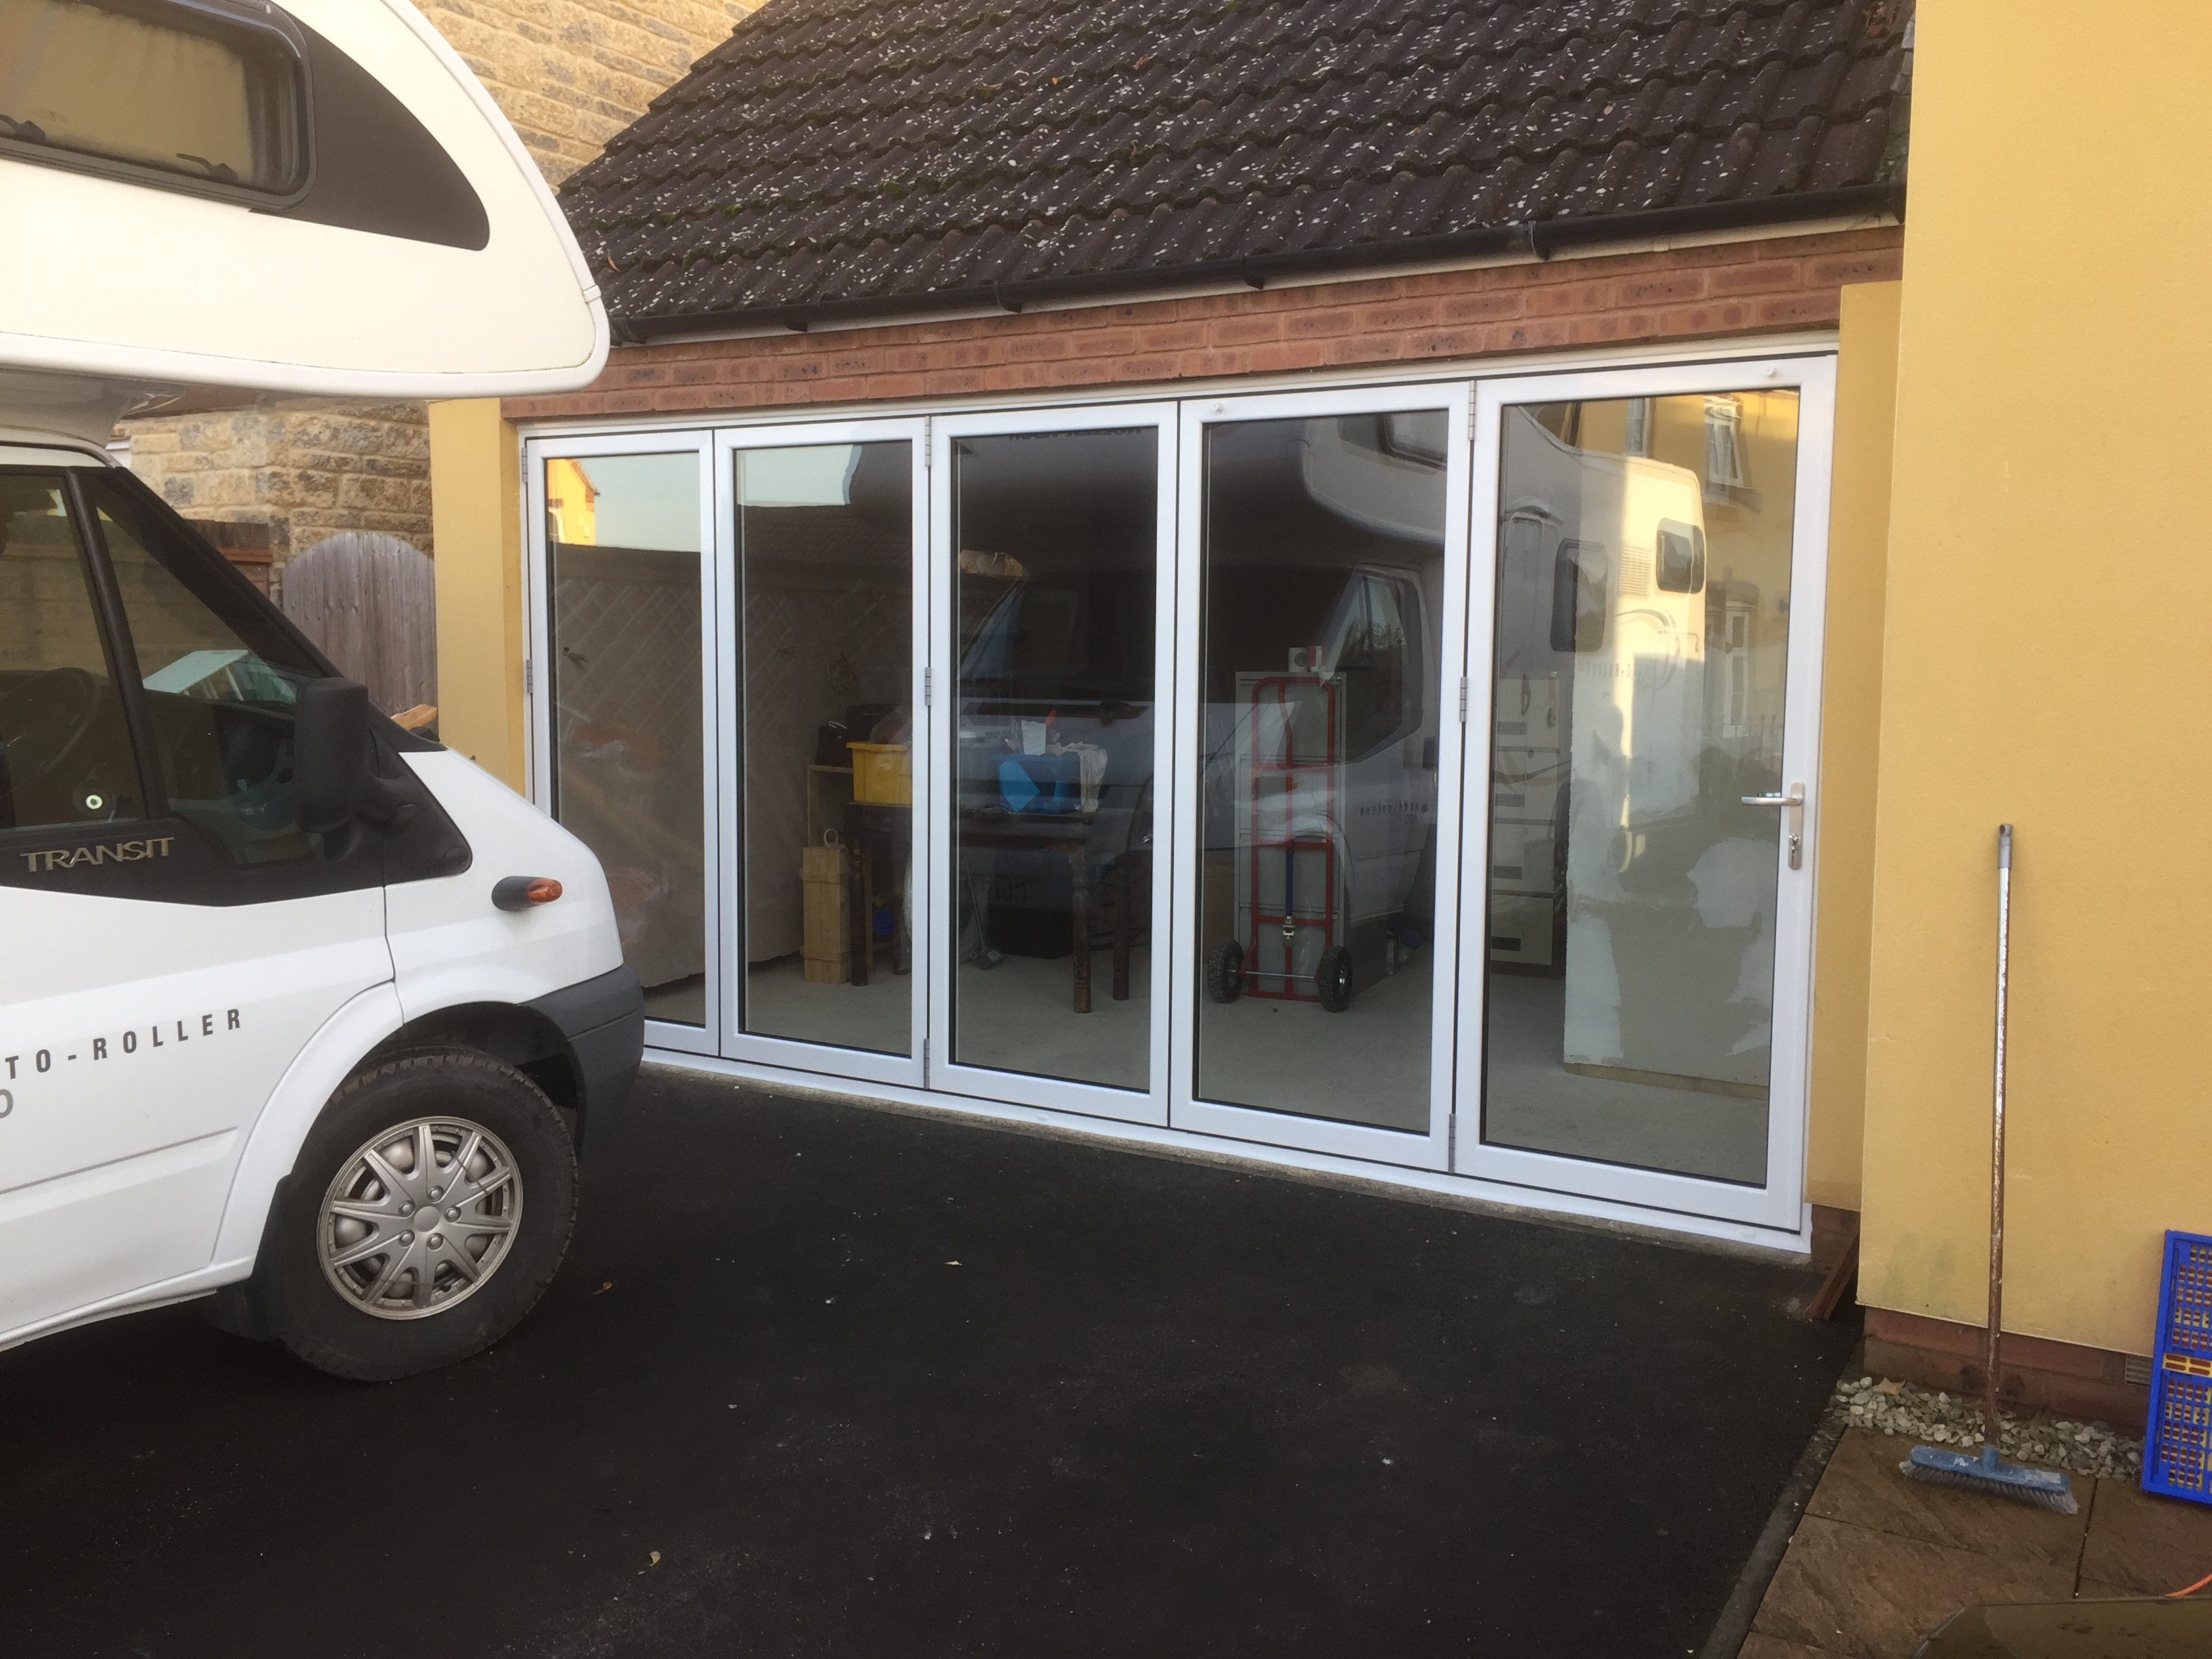 New aluminium bi-fold door, A-rated